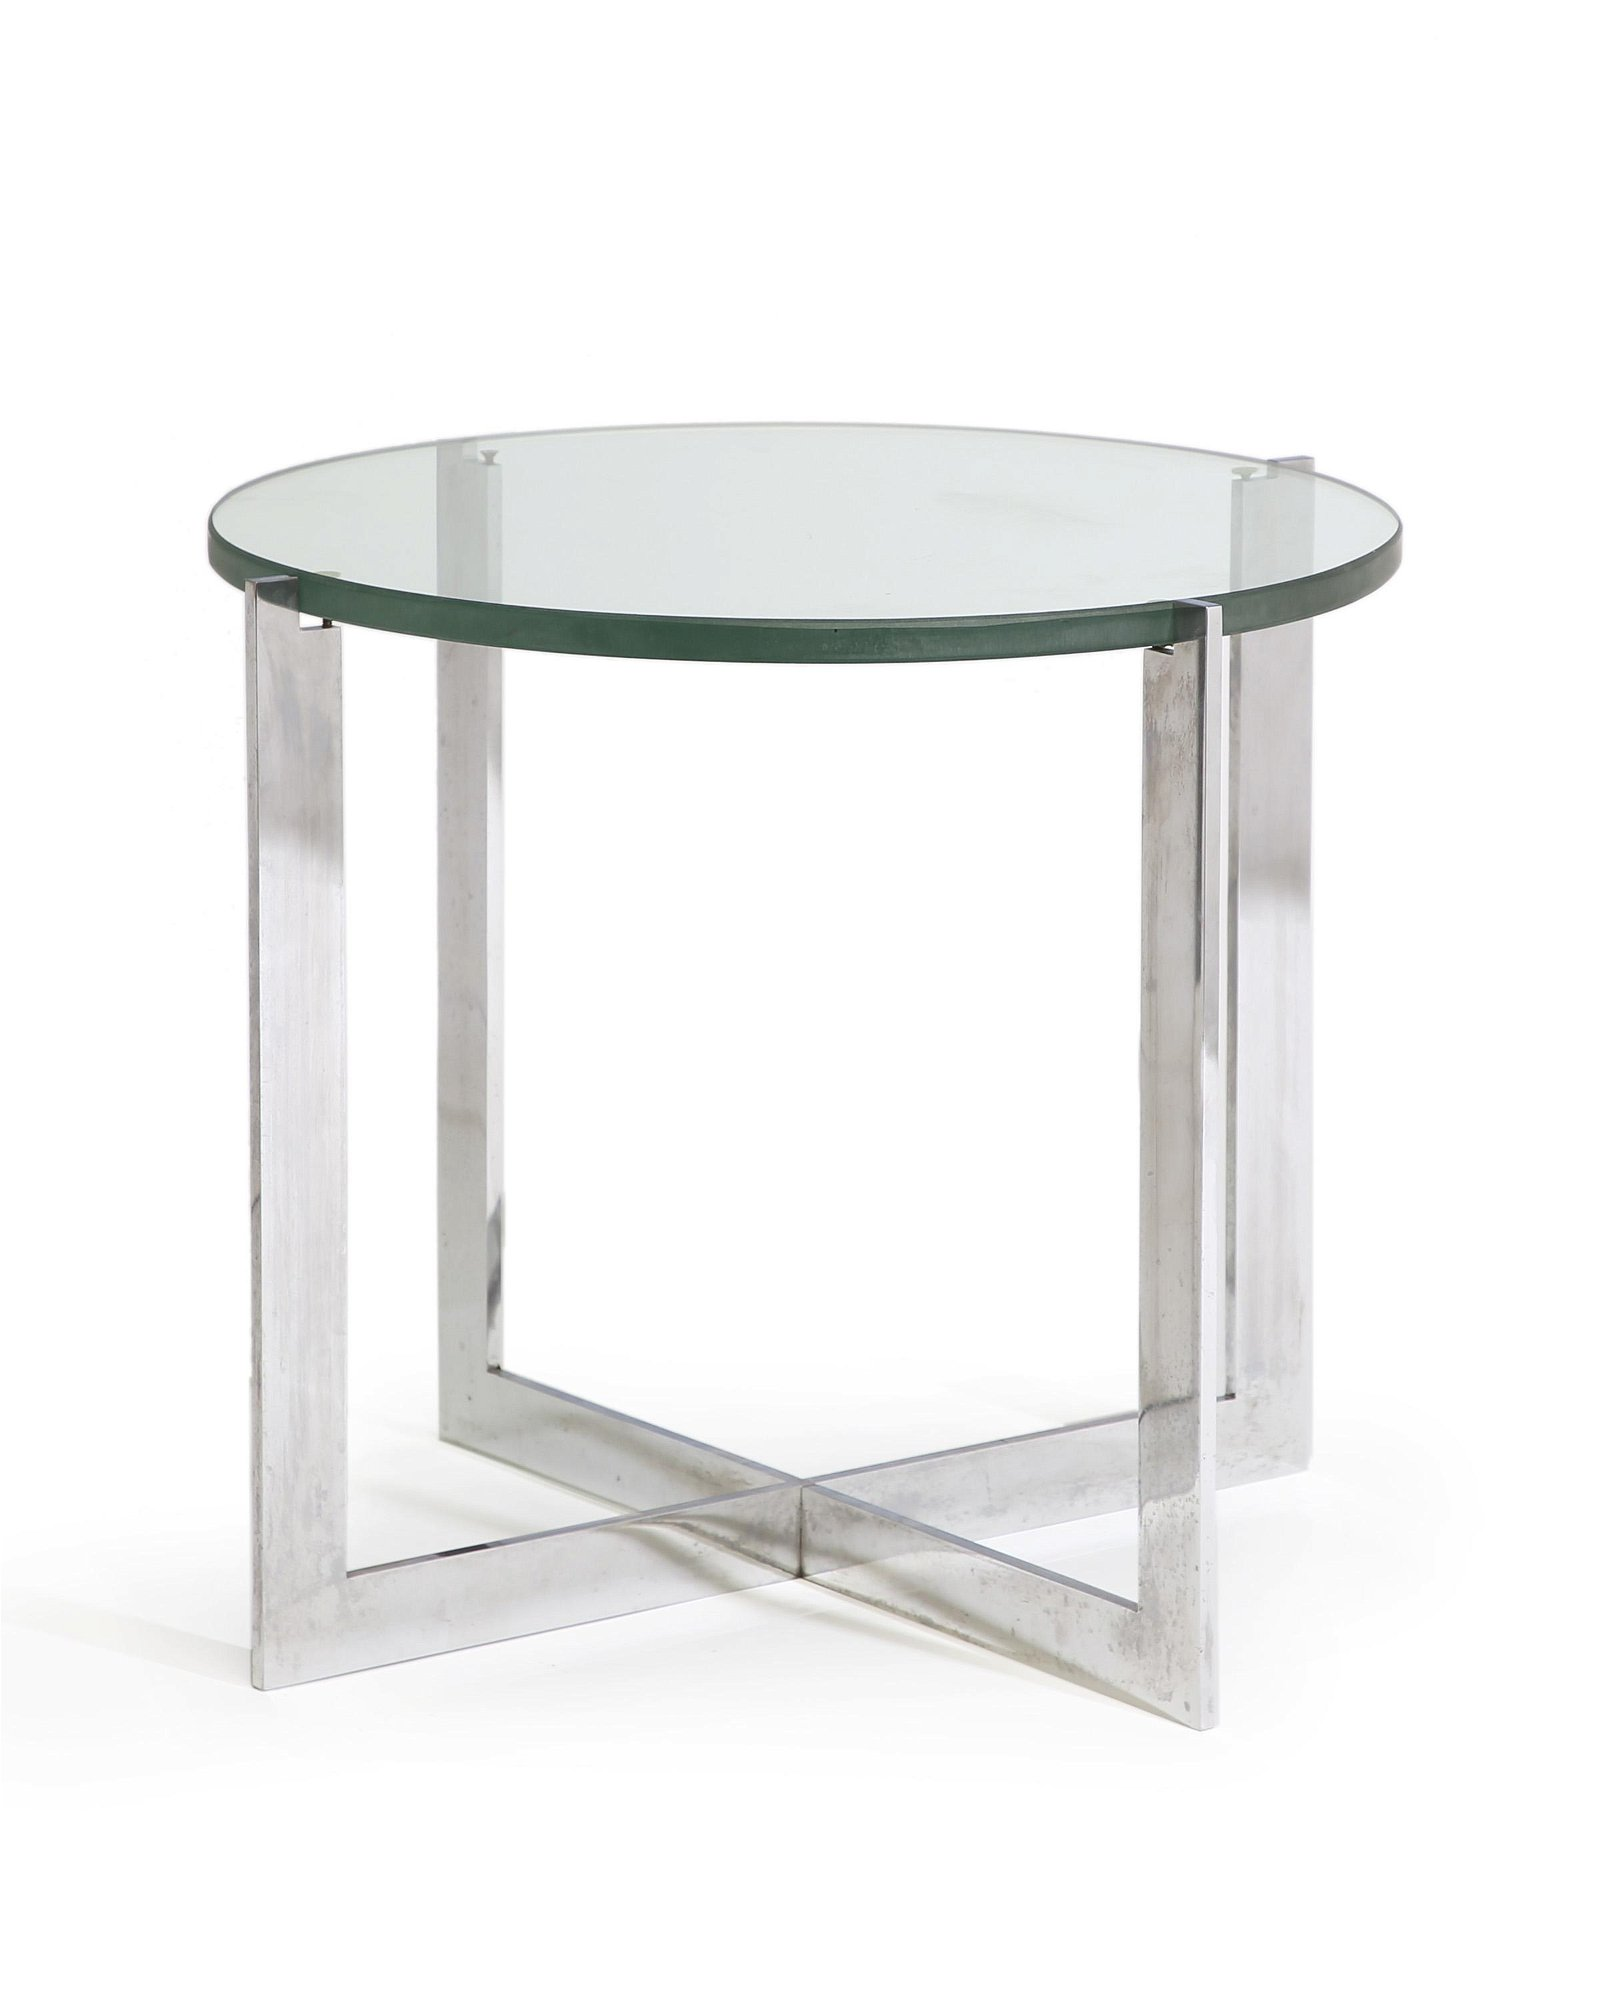 A glass and chrome circular side table